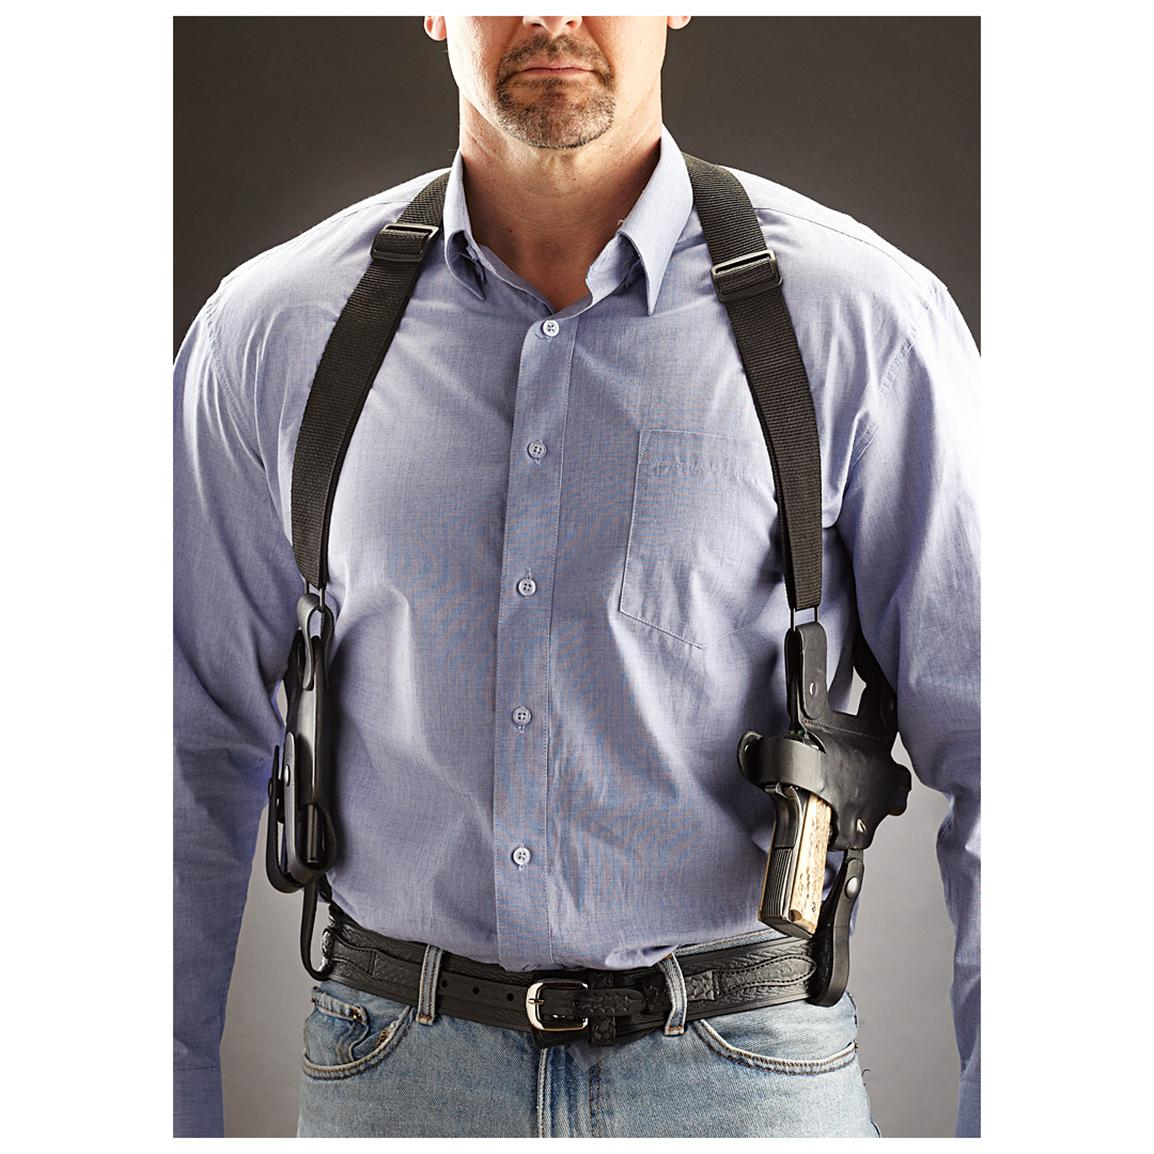 Classic Old West Styles® Thumb Break Shoulder